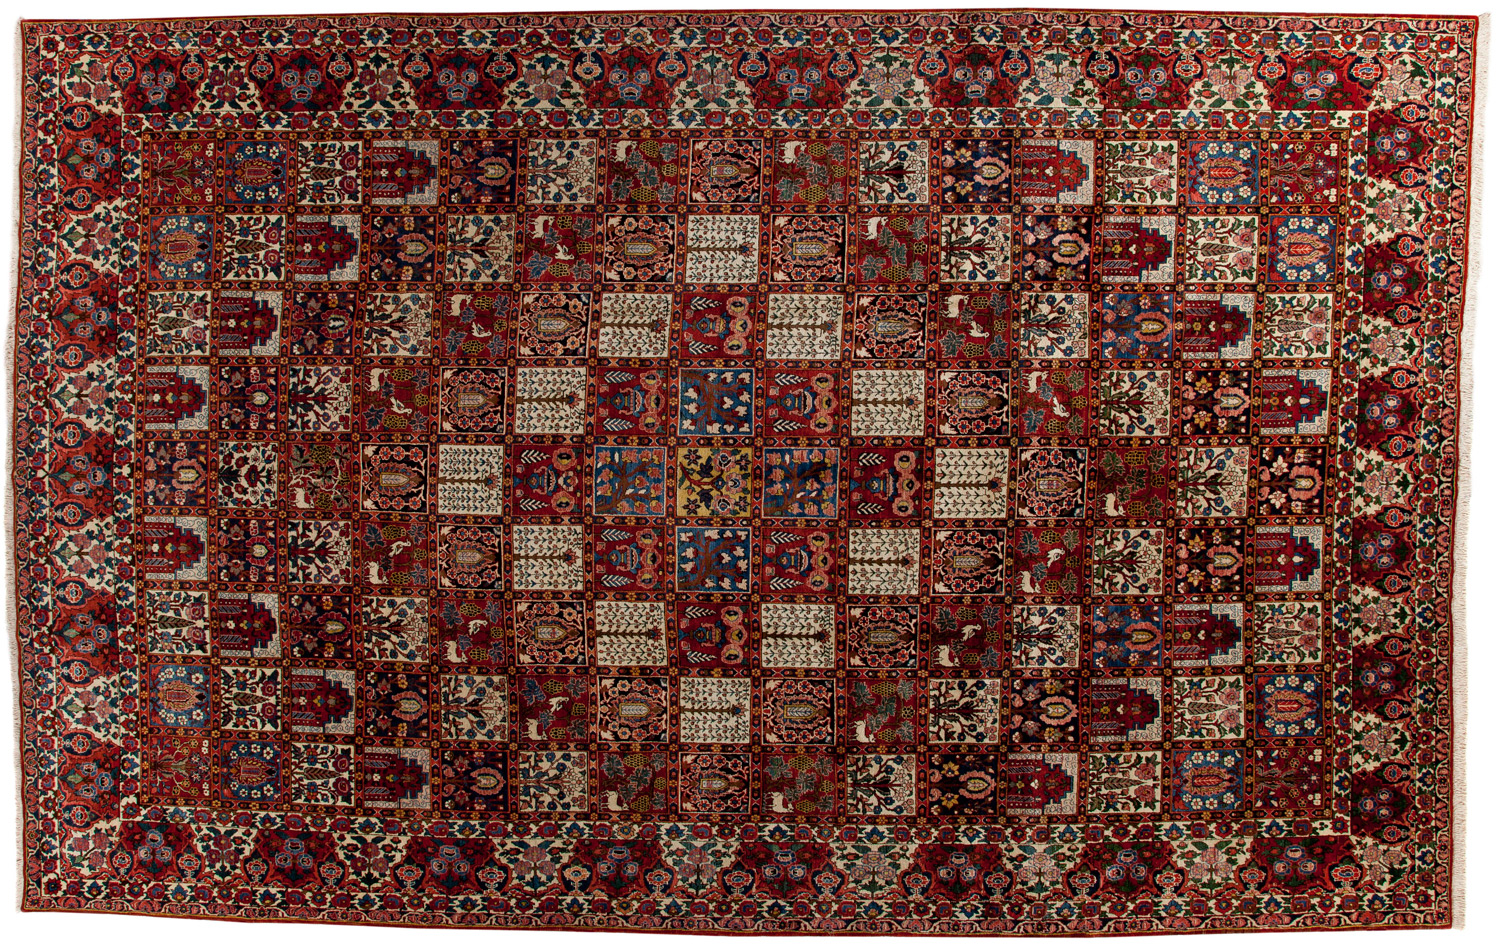 Hand Knotted Wool Persian Rug